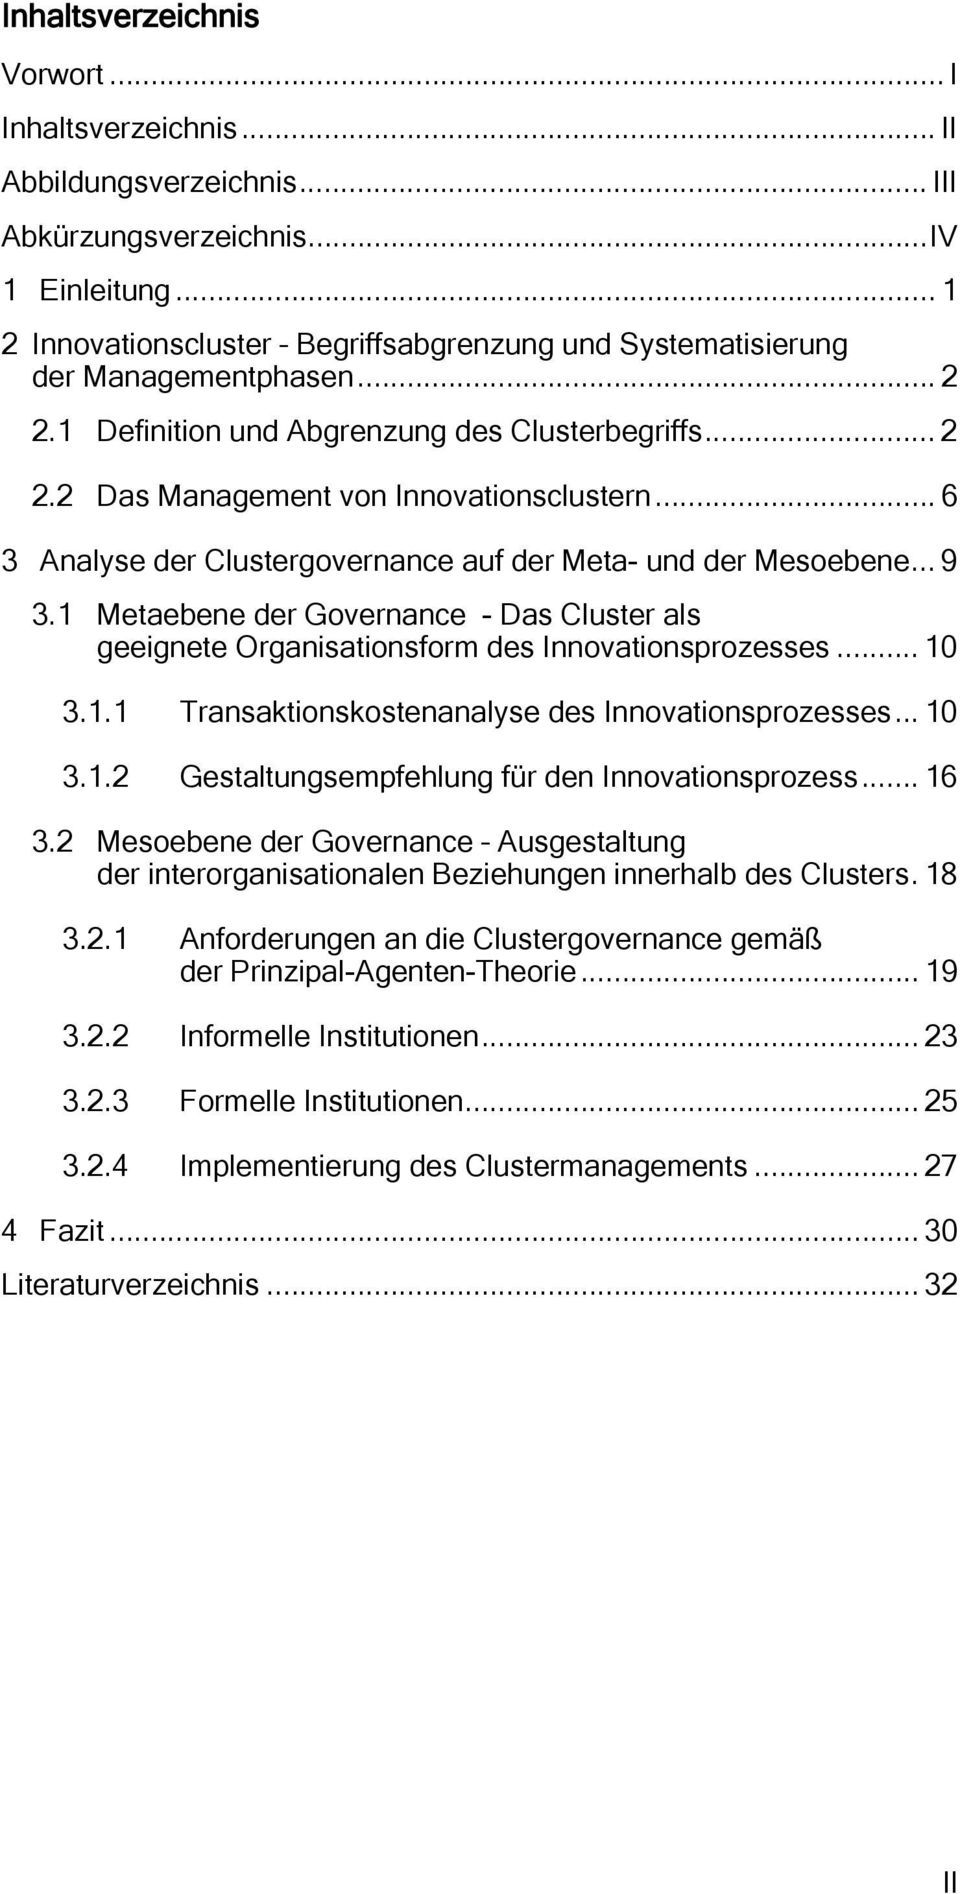 .. 6 3 Analyse der Clustergovernance auf der Meta- und der Mesoebene... 9 3.1 Metaebene der Governance - Das Cluster als geeignete Organisationsform des Innovationsprozesses... 10 3.1.1 Transaktionskostenanalyse des Innovationsprozesses.